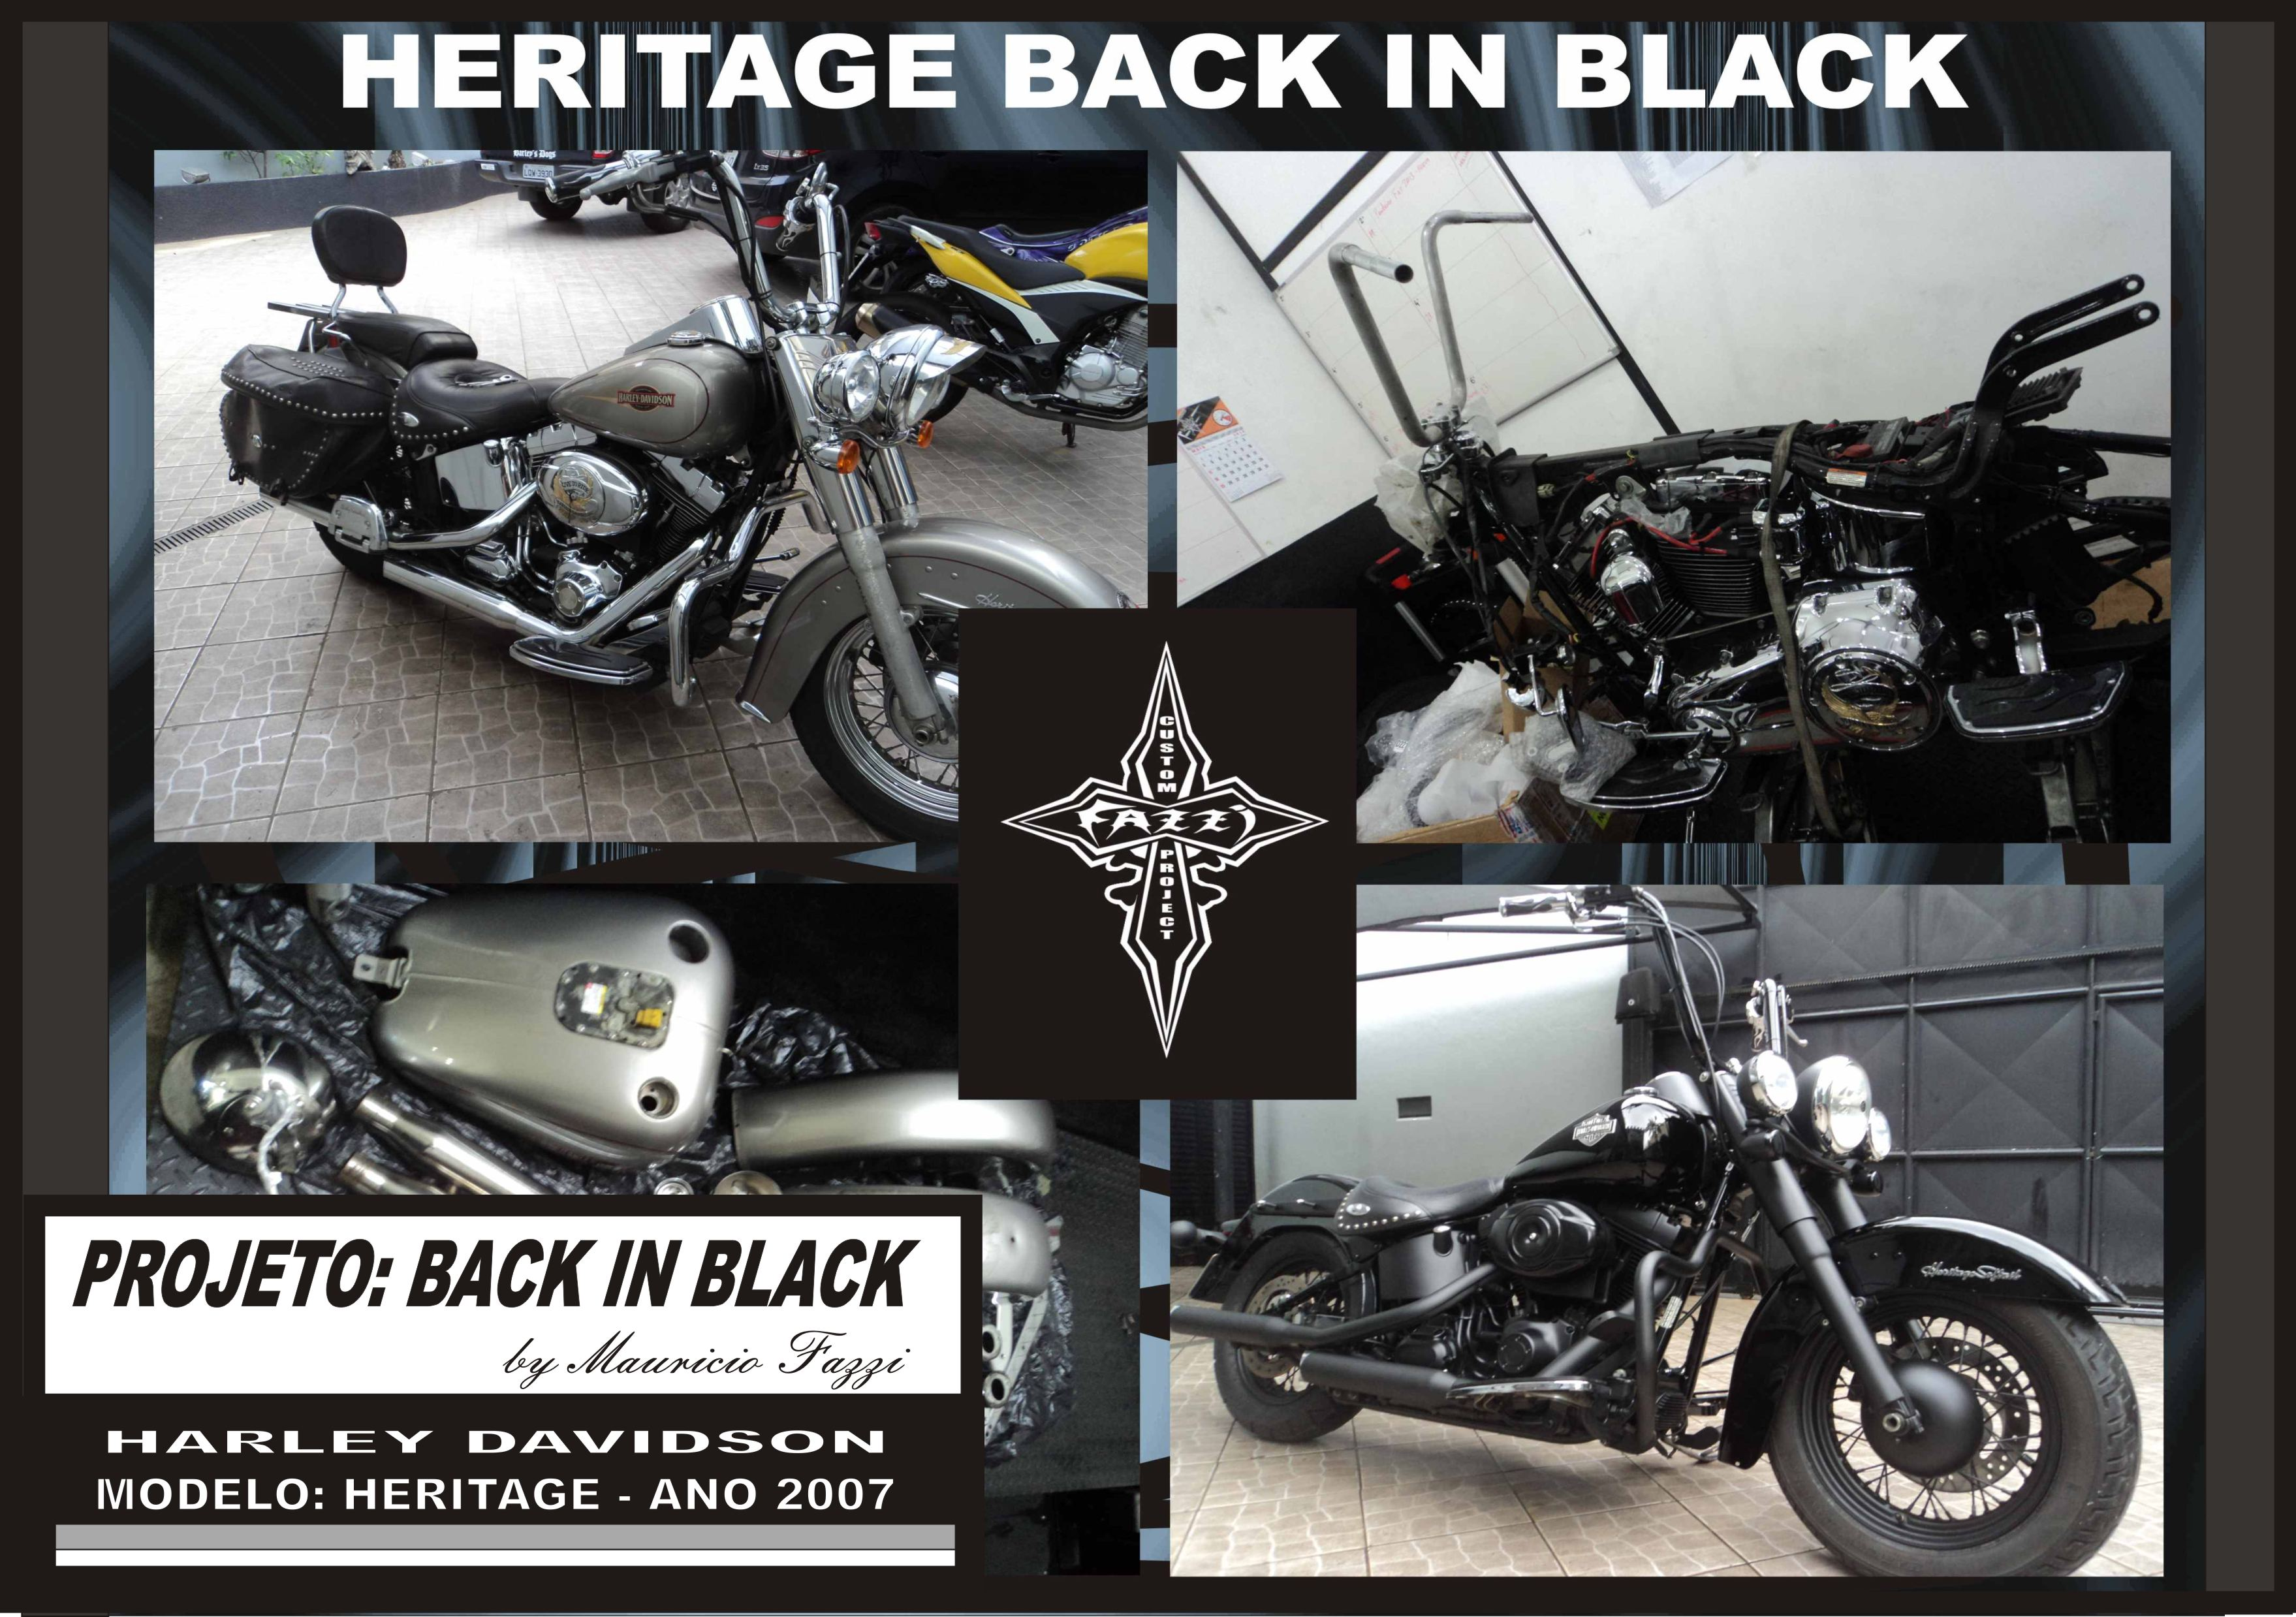 BACK IN BLACK - HERITAGE 2007